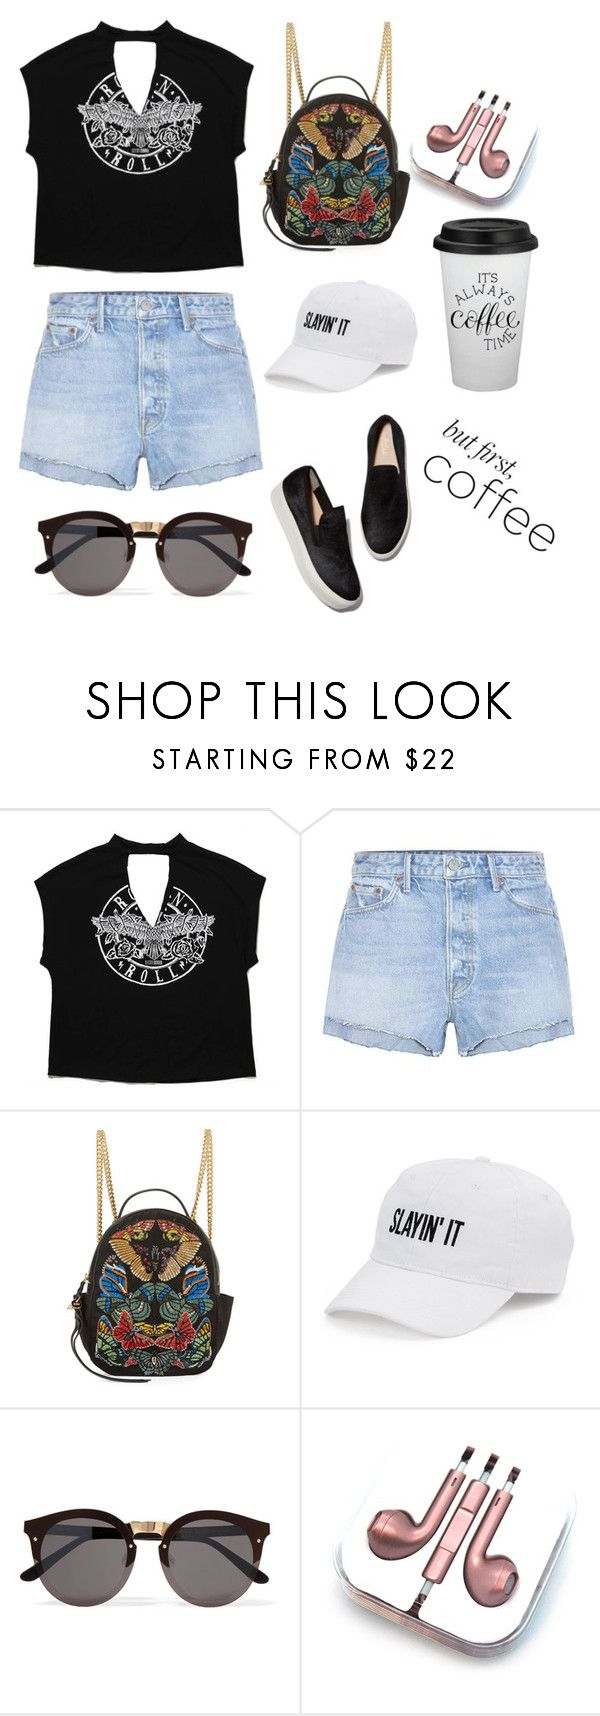 """Untitled #135"" by putrinaini on Polyvore featuring GRLFRND, Kane, Alexander McQueen, SO, Illesteva and PhunkeeTree"